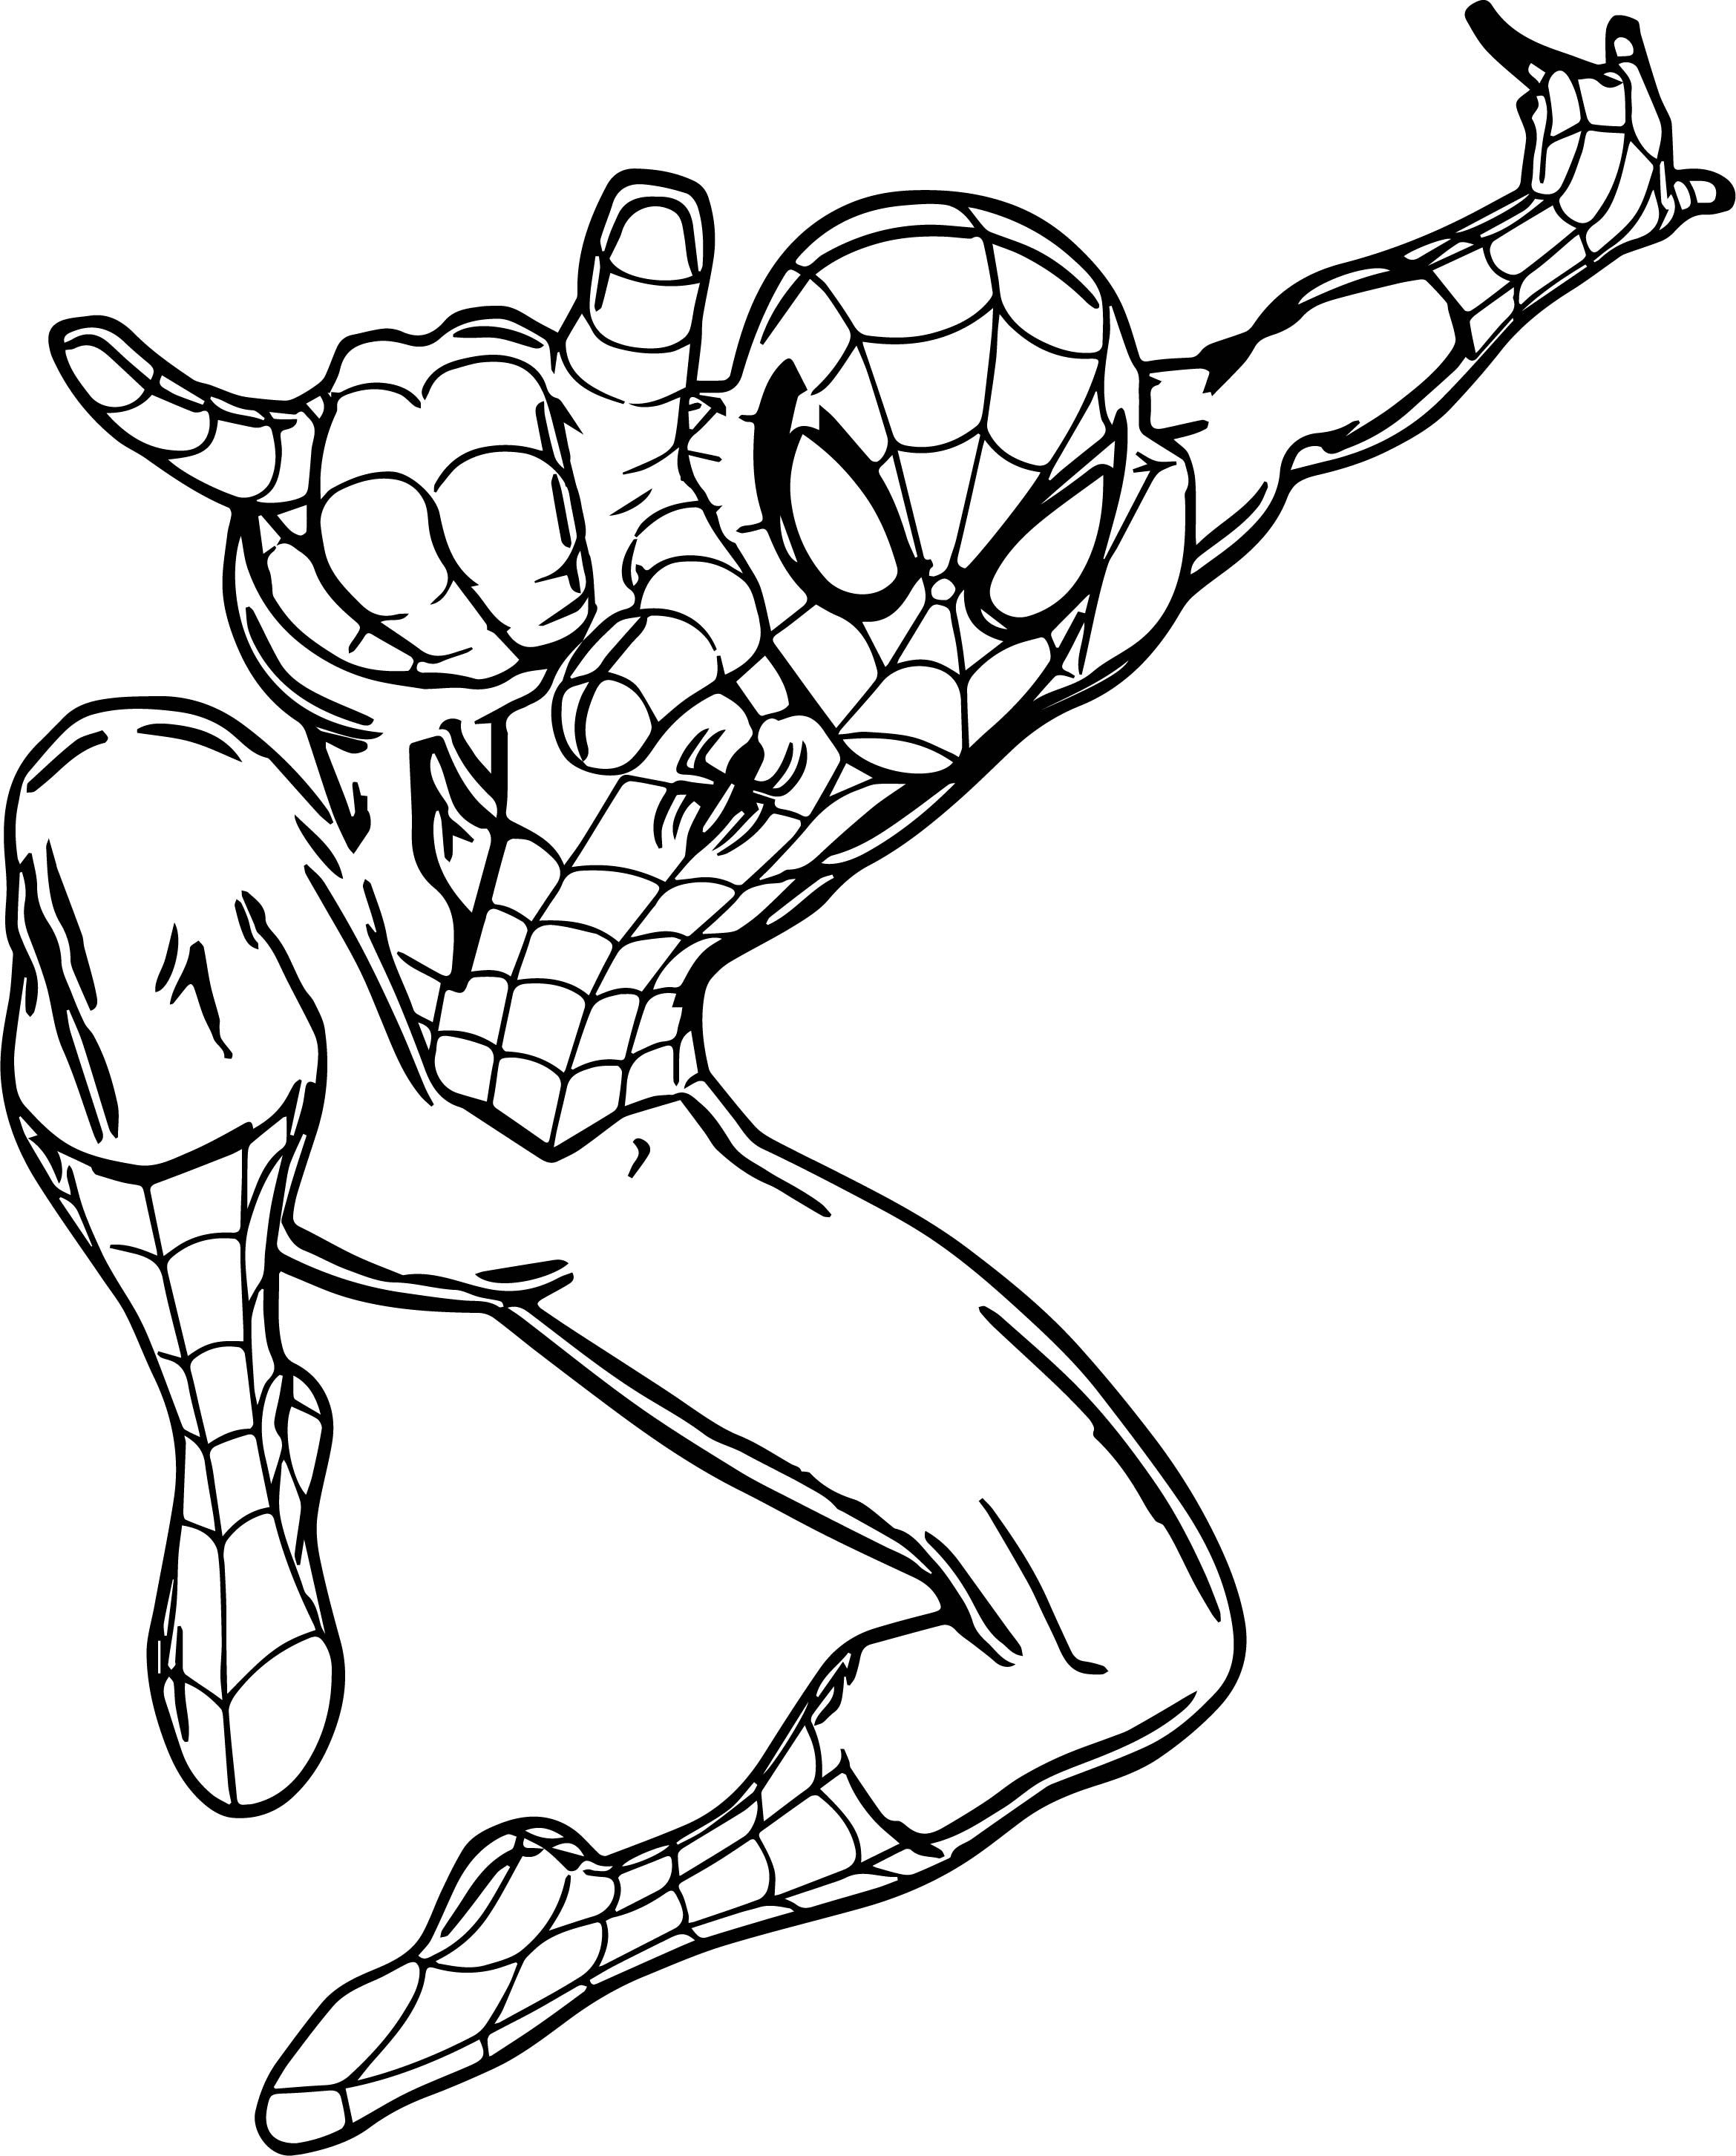 Awesome Ultimate Spider Man Giant Wall Decal Coloring Page Spiderman Coloring Avengers Coloring Pages Superhero Coloring Pages